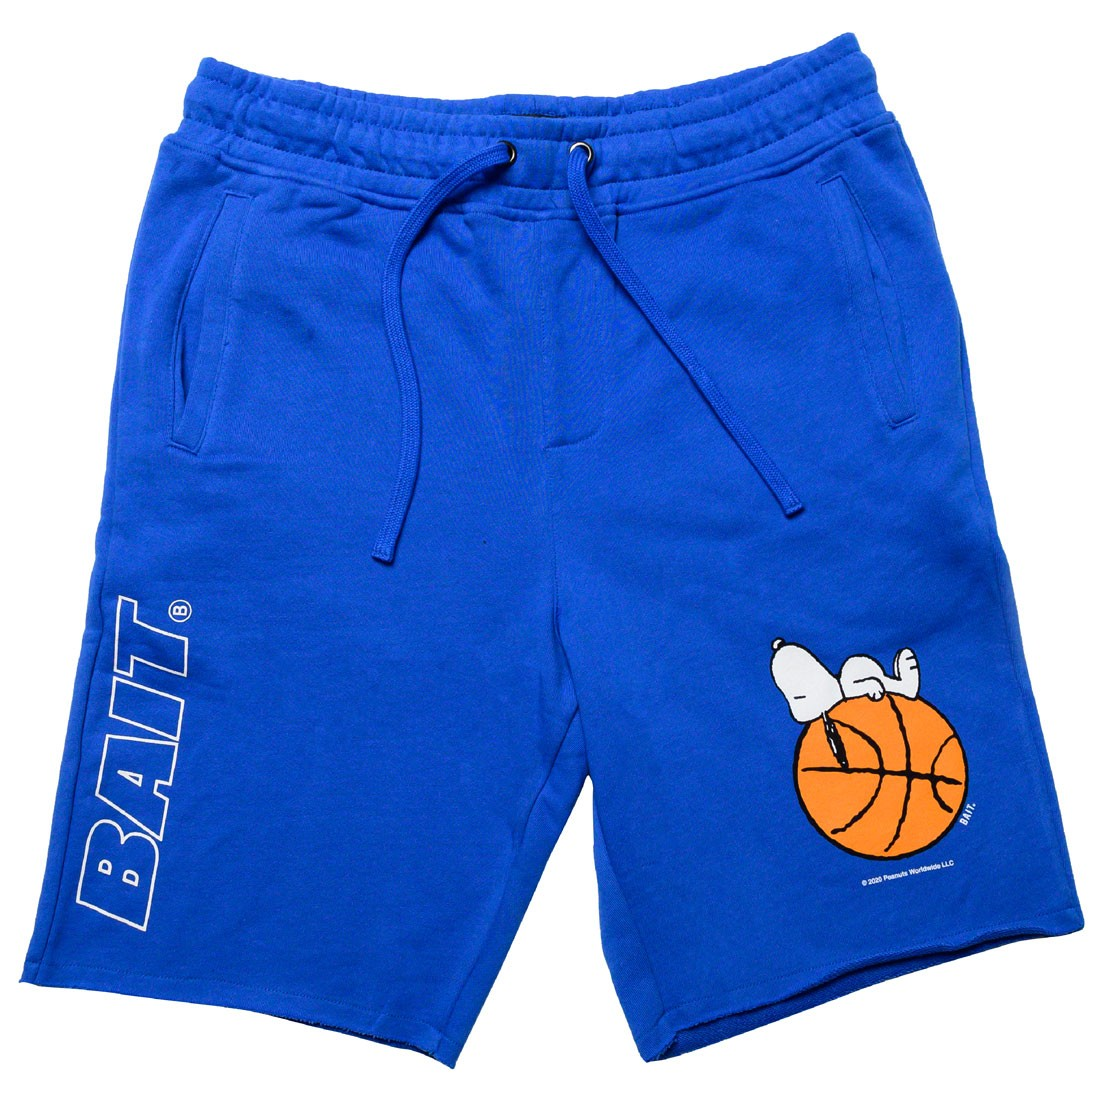 BAIT x Snoopy Men Snoopy Sleeper Baller Shorts (blue)